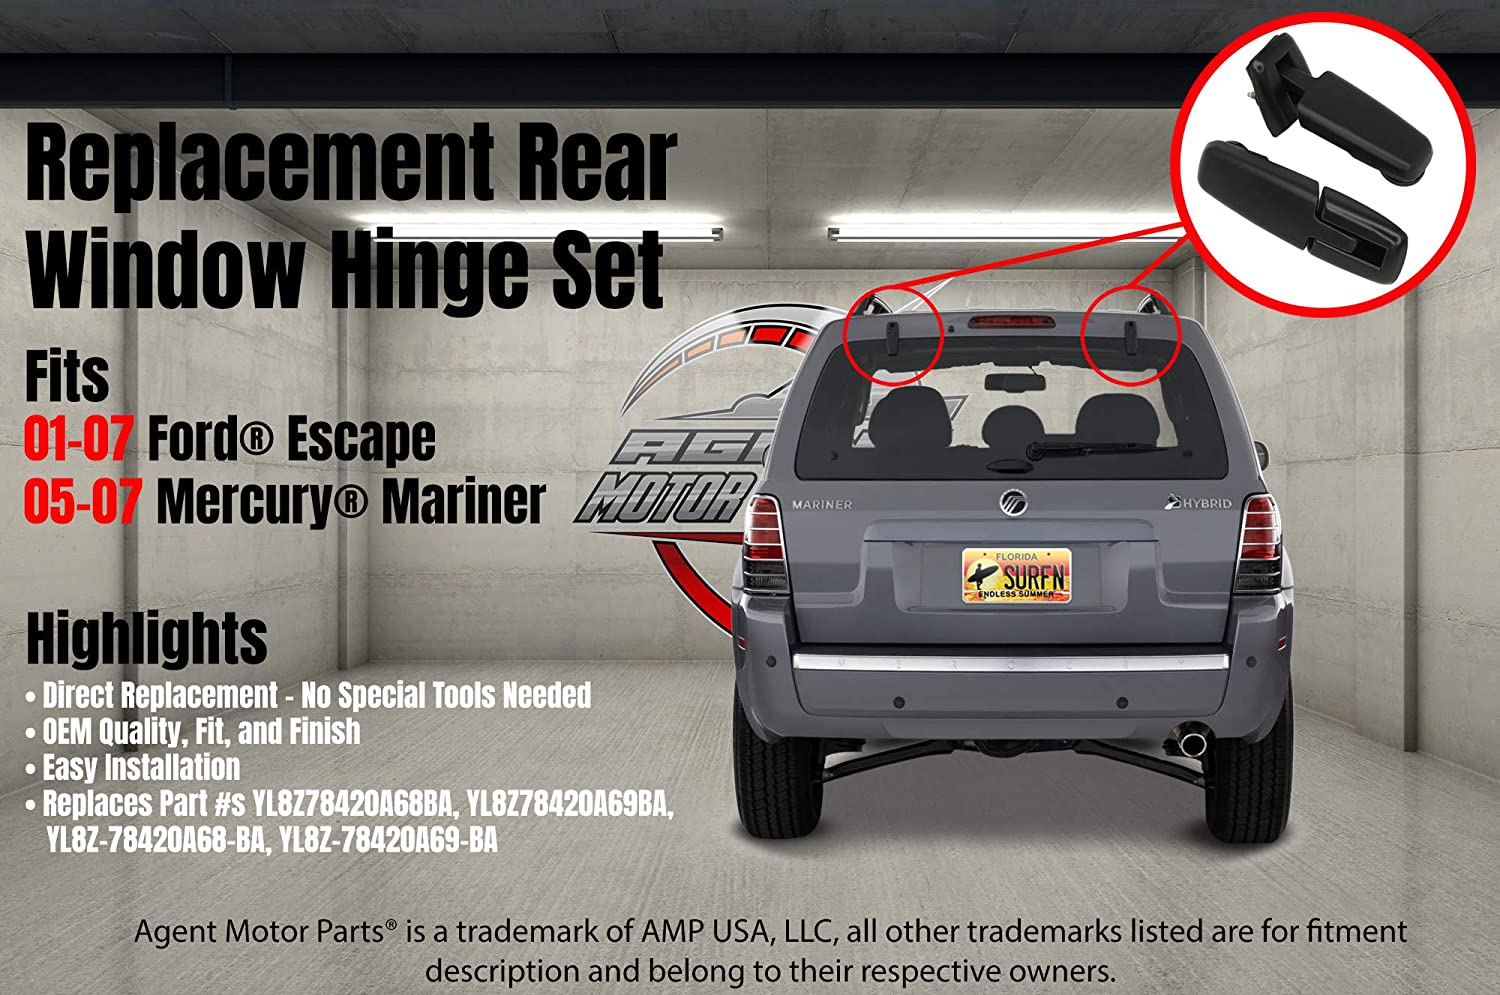 2007 2006 2003 Fits Ford Escape 2001 YL8Z-78420A68-BA 2004 Mercury Mariner 2005-2007 Rear Window Hinges Kit Liftgate Glass Hinge Set 2005 Replaces# YL8Z78420A68BA YL8Z78420A69BA 2002